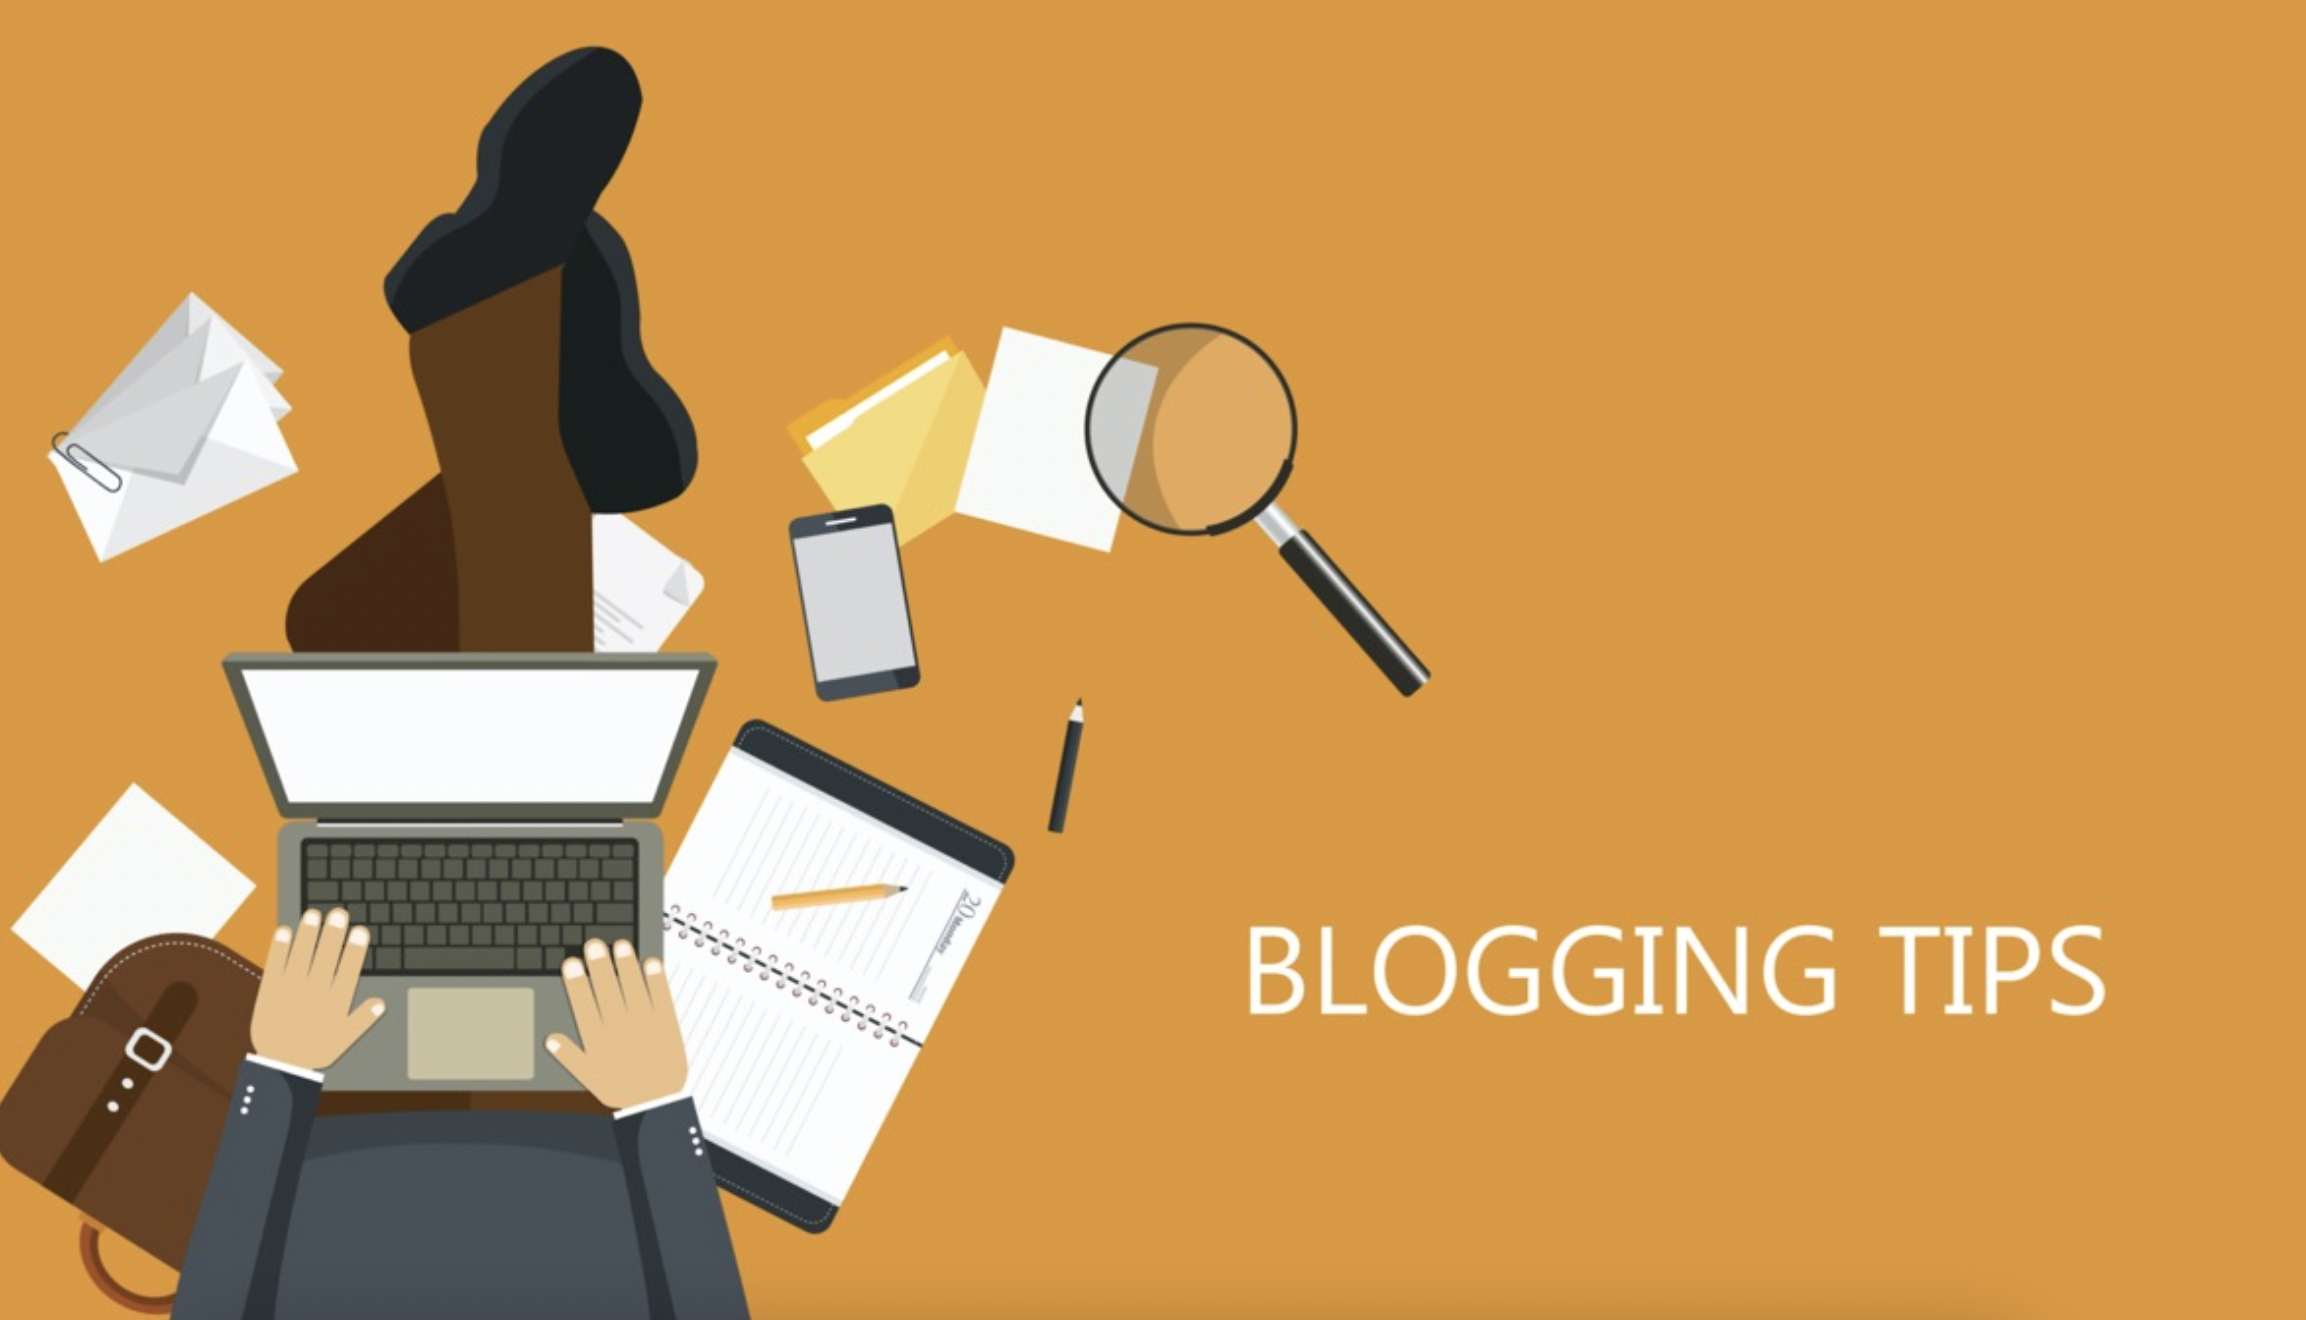 Tips and tricks to create funny blogs and pages